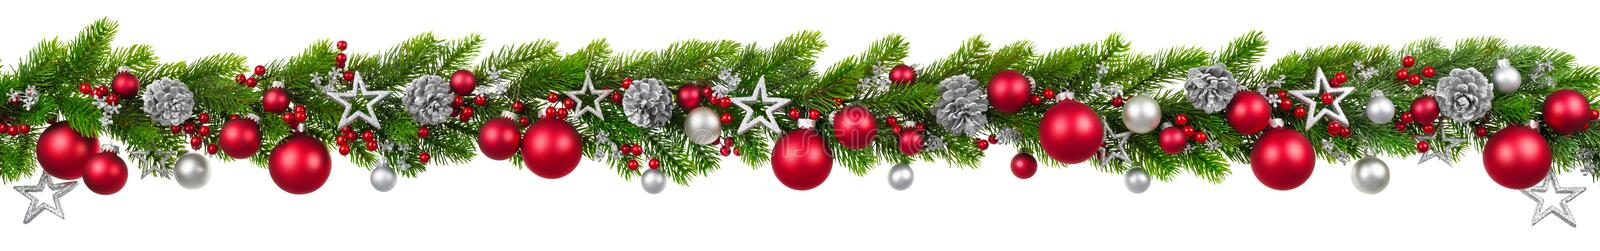 Christmas border on white, hanging decorated garland royalty free stock photography